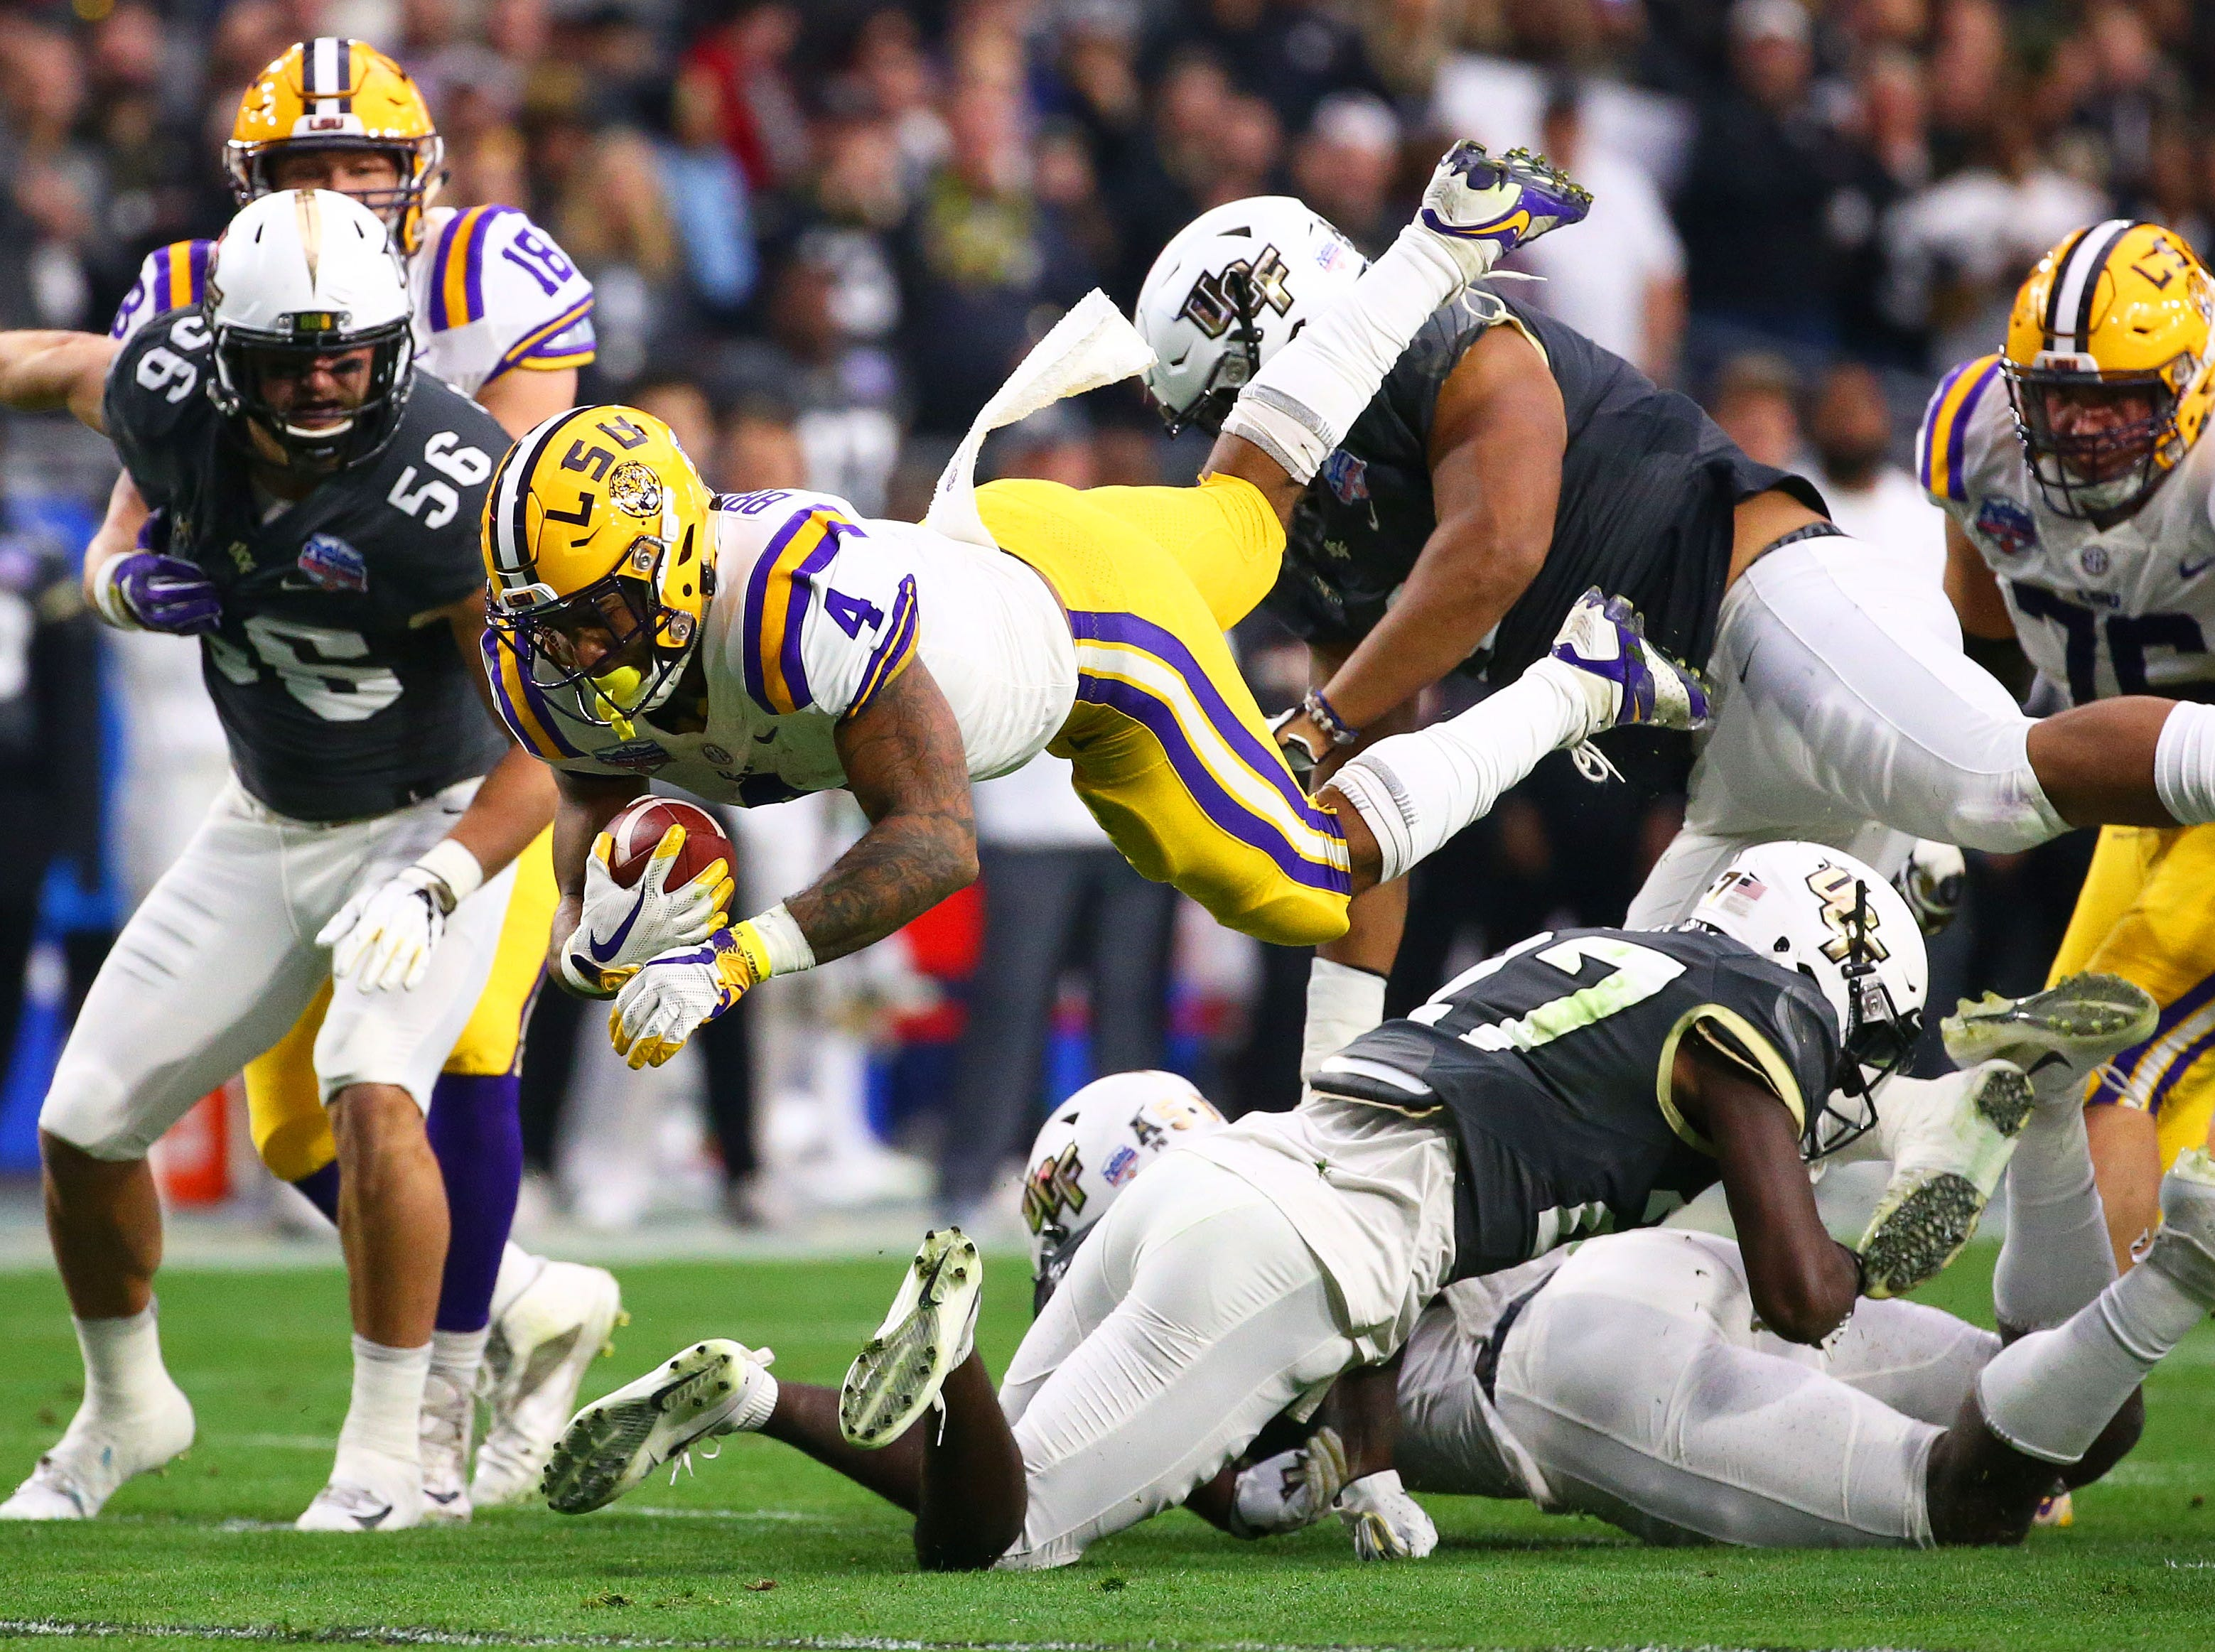 LSU Tigers running back Nick Brossette (4) dives over the UCF Knights defensive in the first half at the Fiesta Bowl on Jan. 1 at State Farm Stadium.